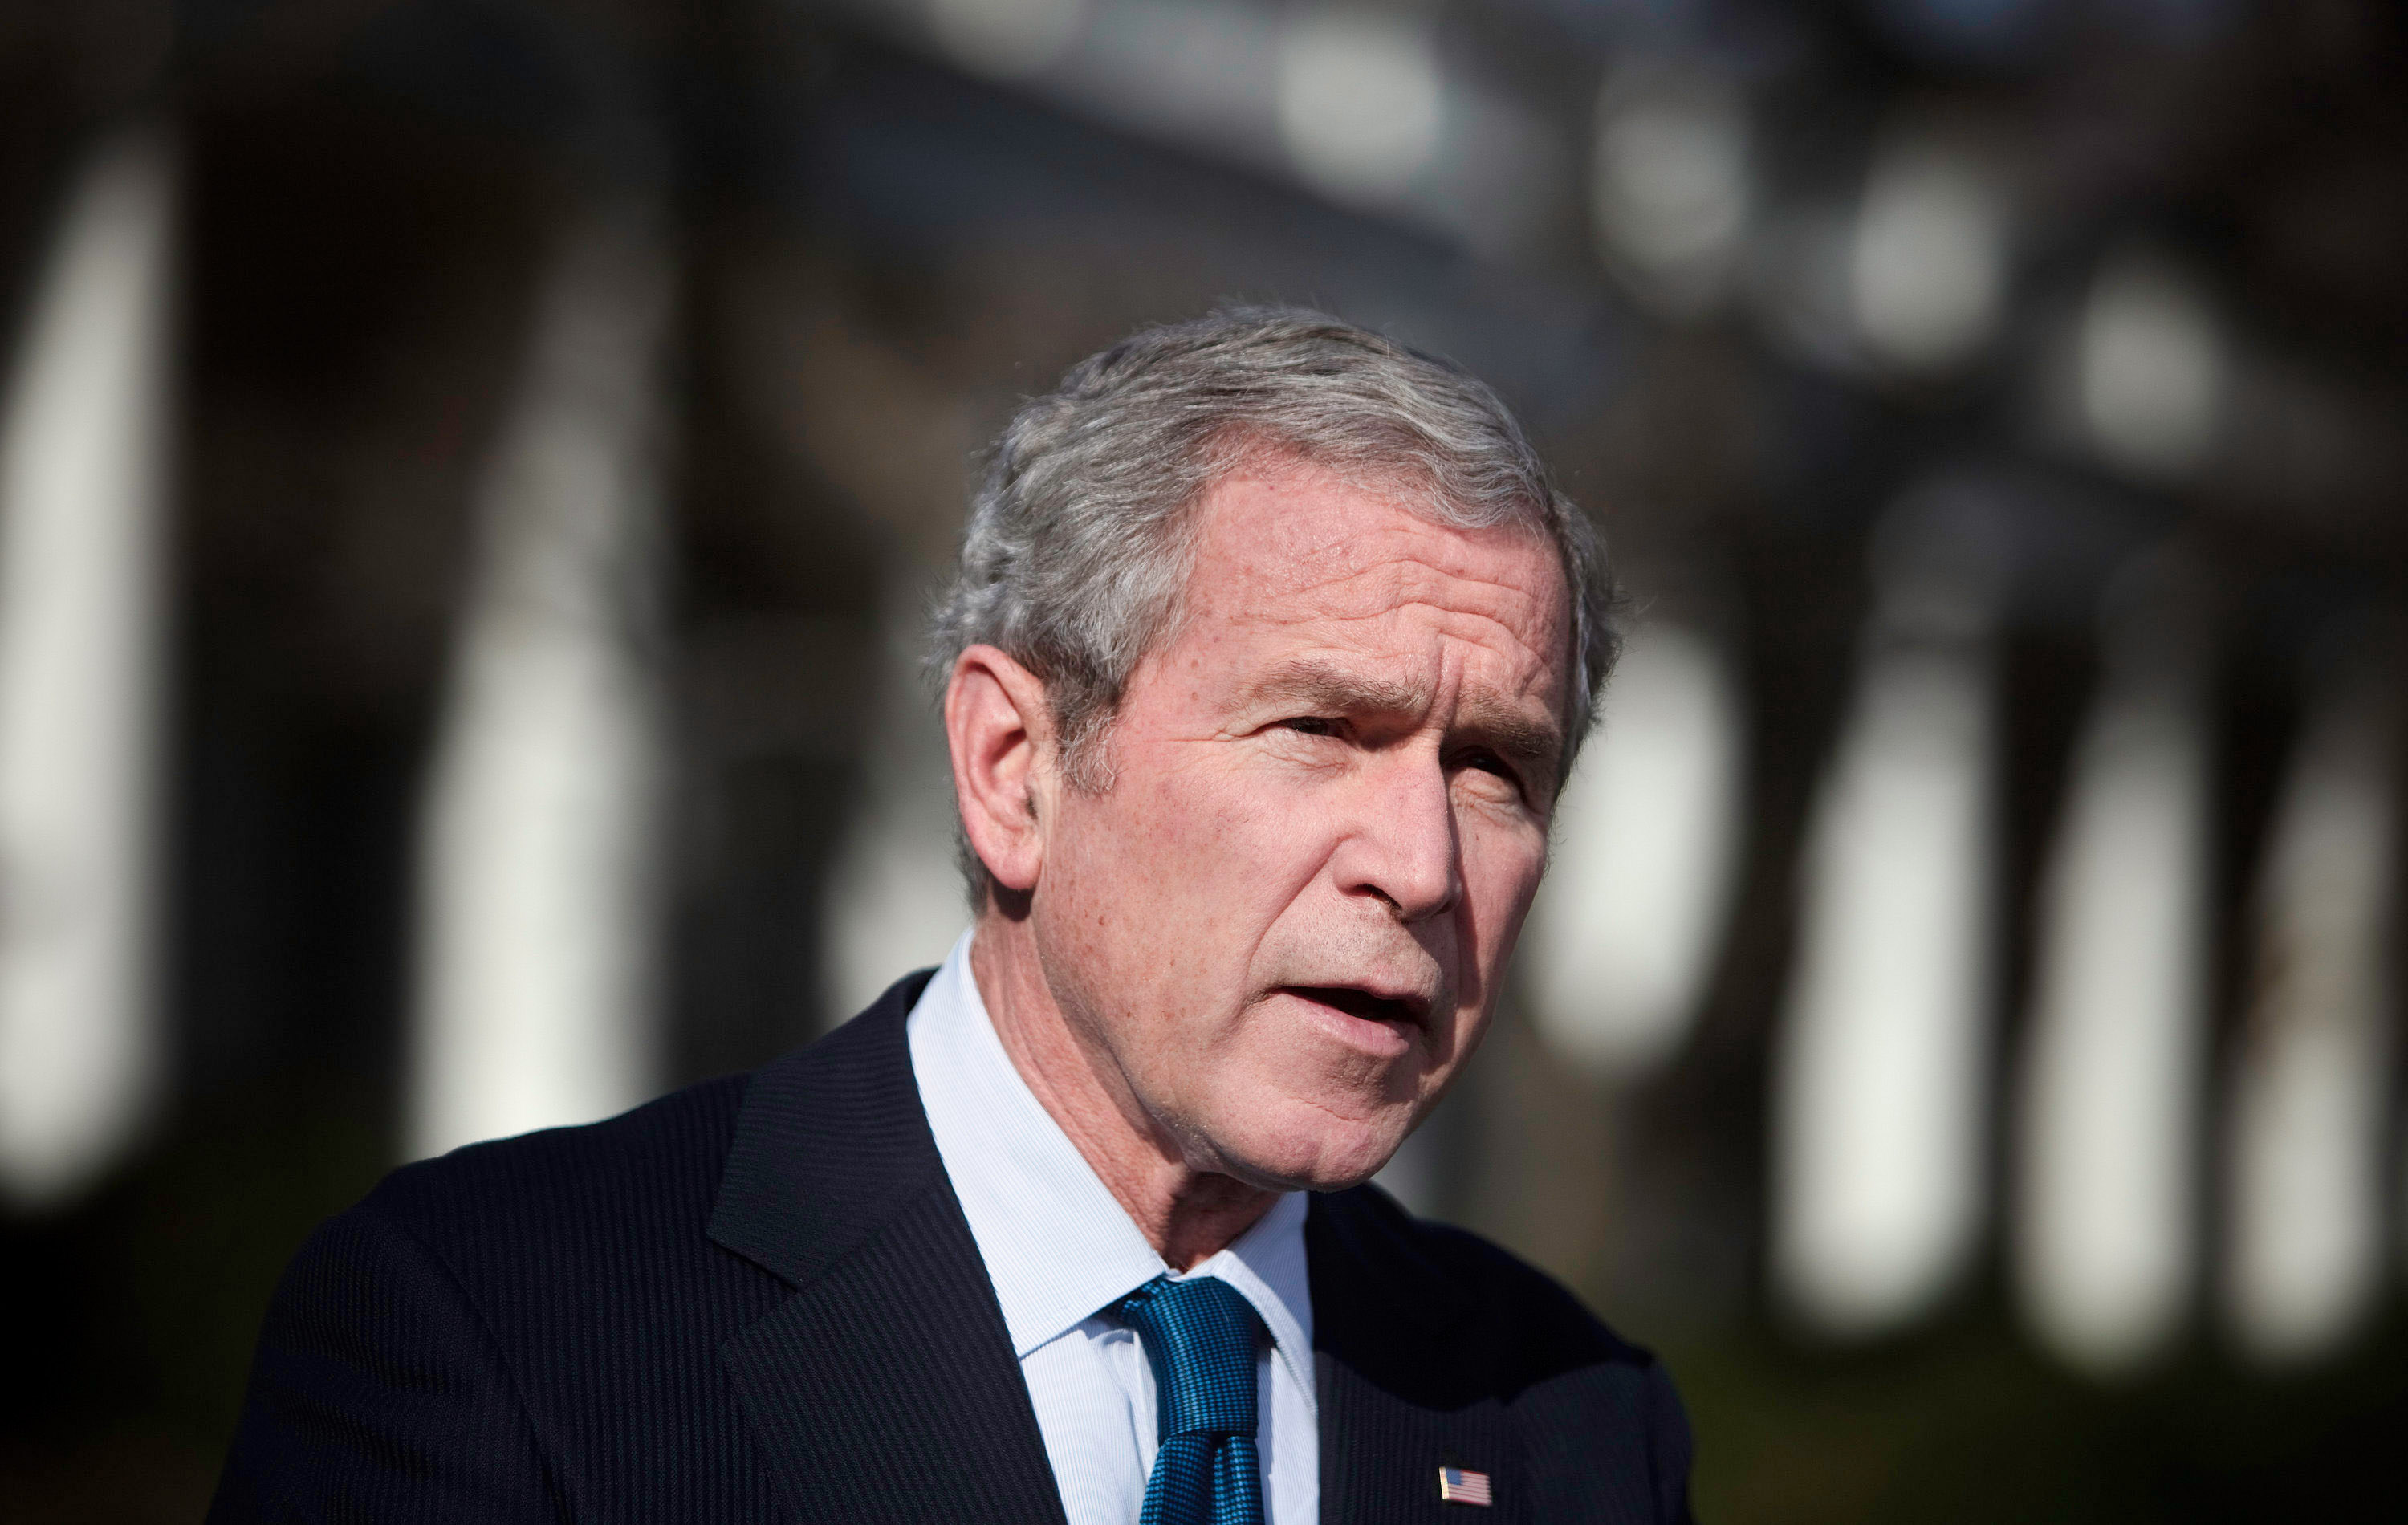 George W. Bush: He Gave Rise to the Tea Party George Bush